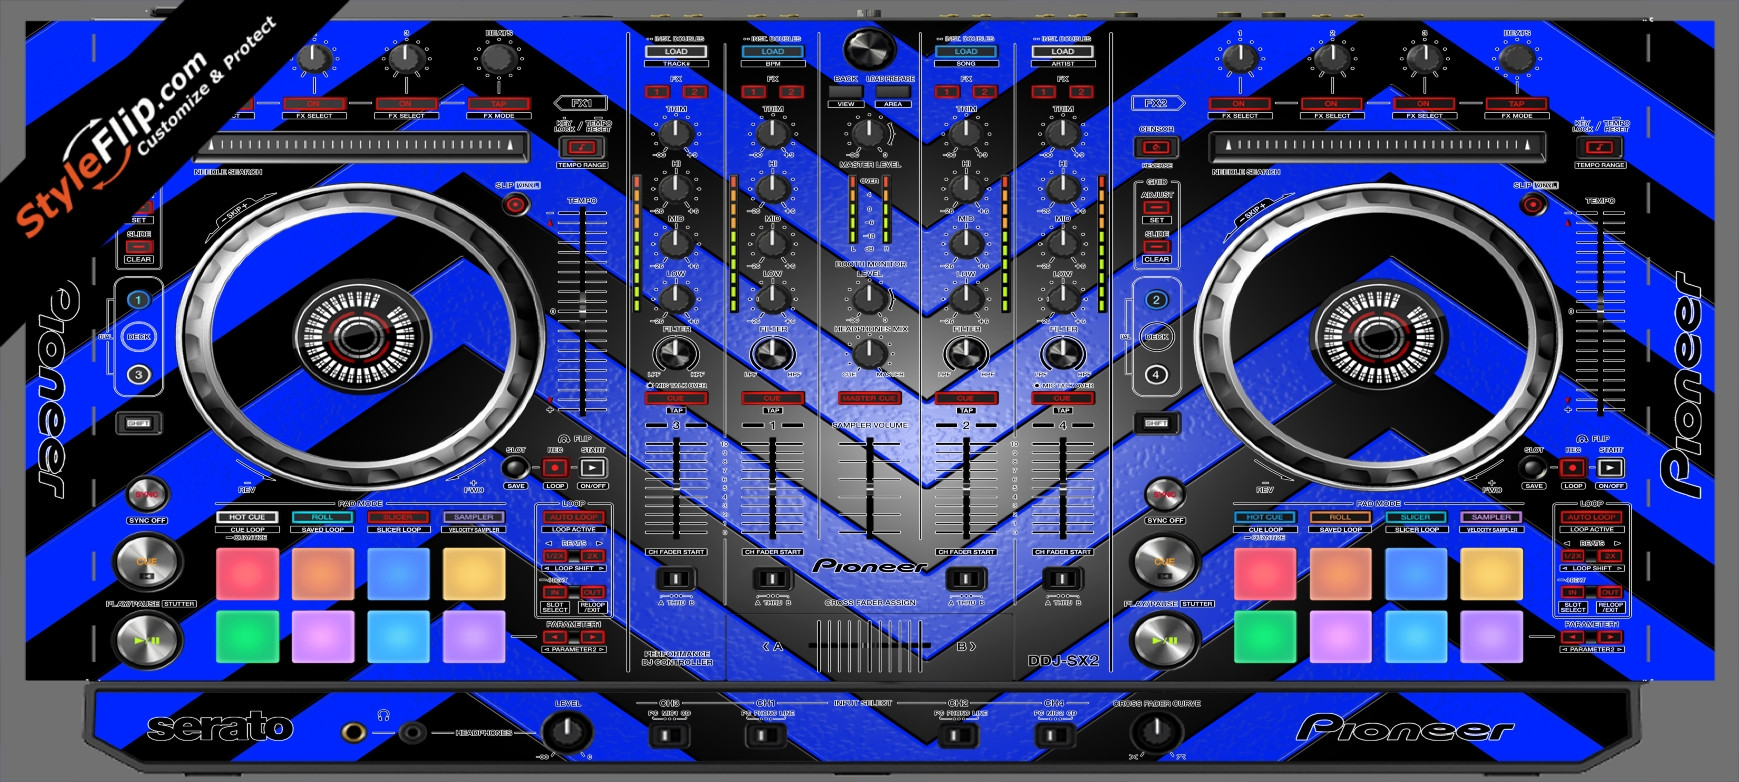 Black & Blue Chevron Pioneer DDJ-SX2